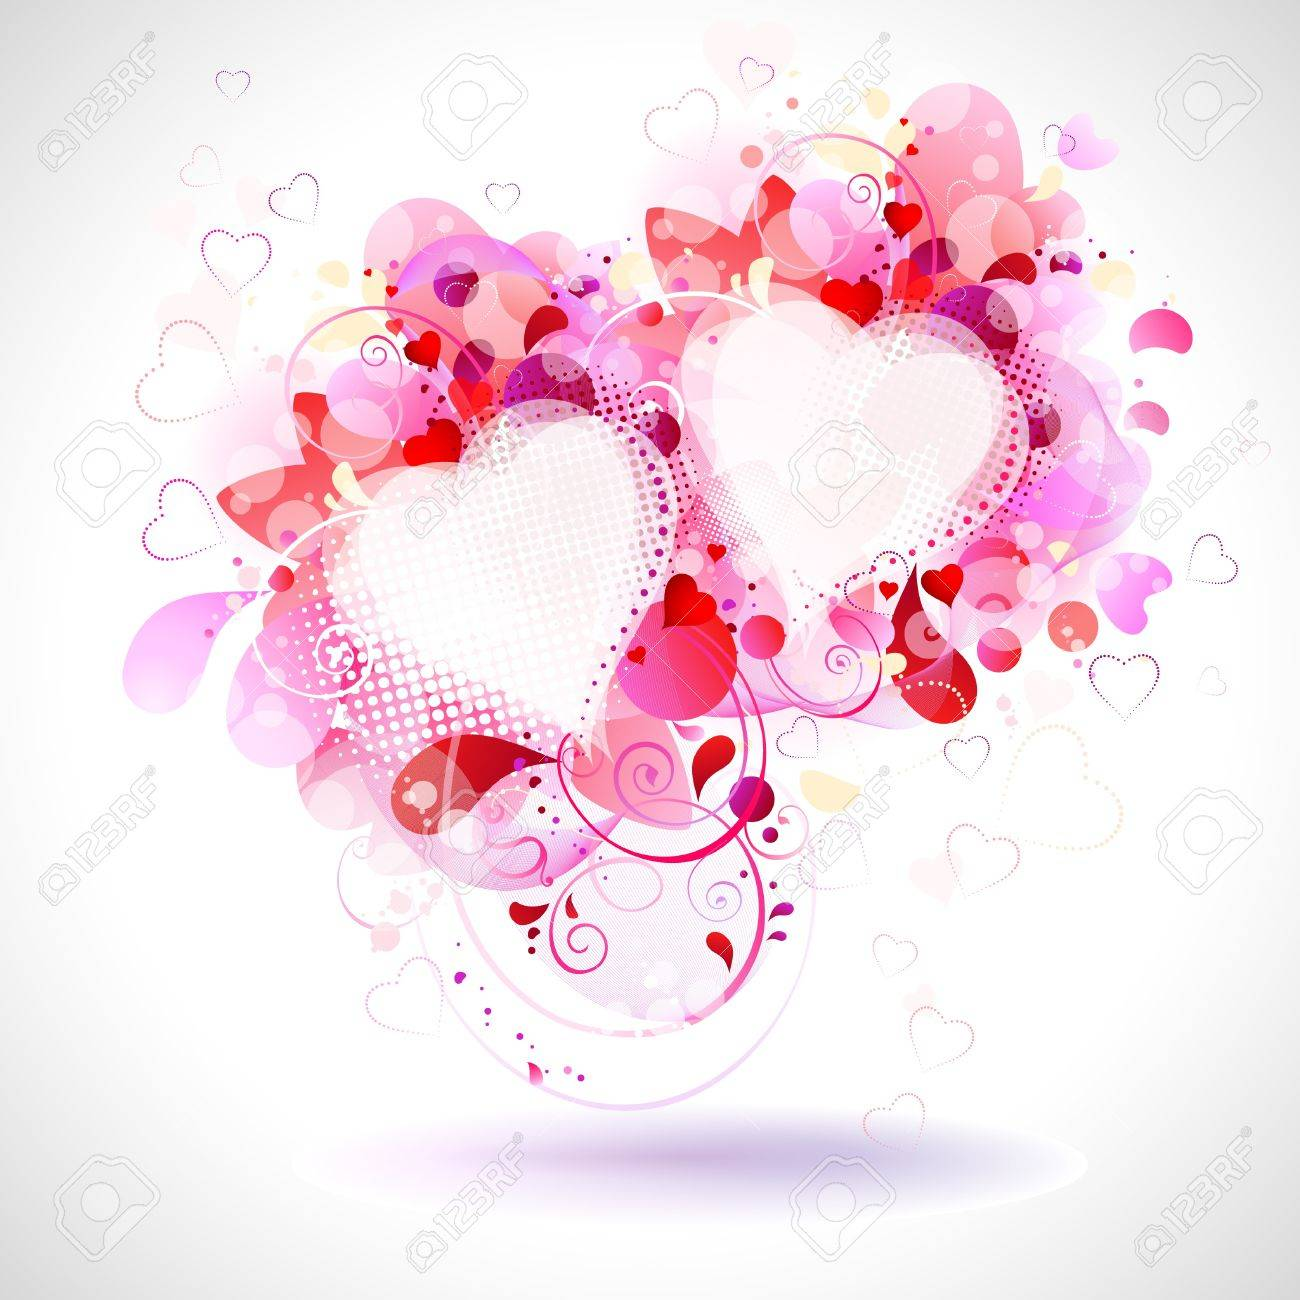 Frame Of Two Hearts Royalty Free Cliparts, Vectors, And Stock ...